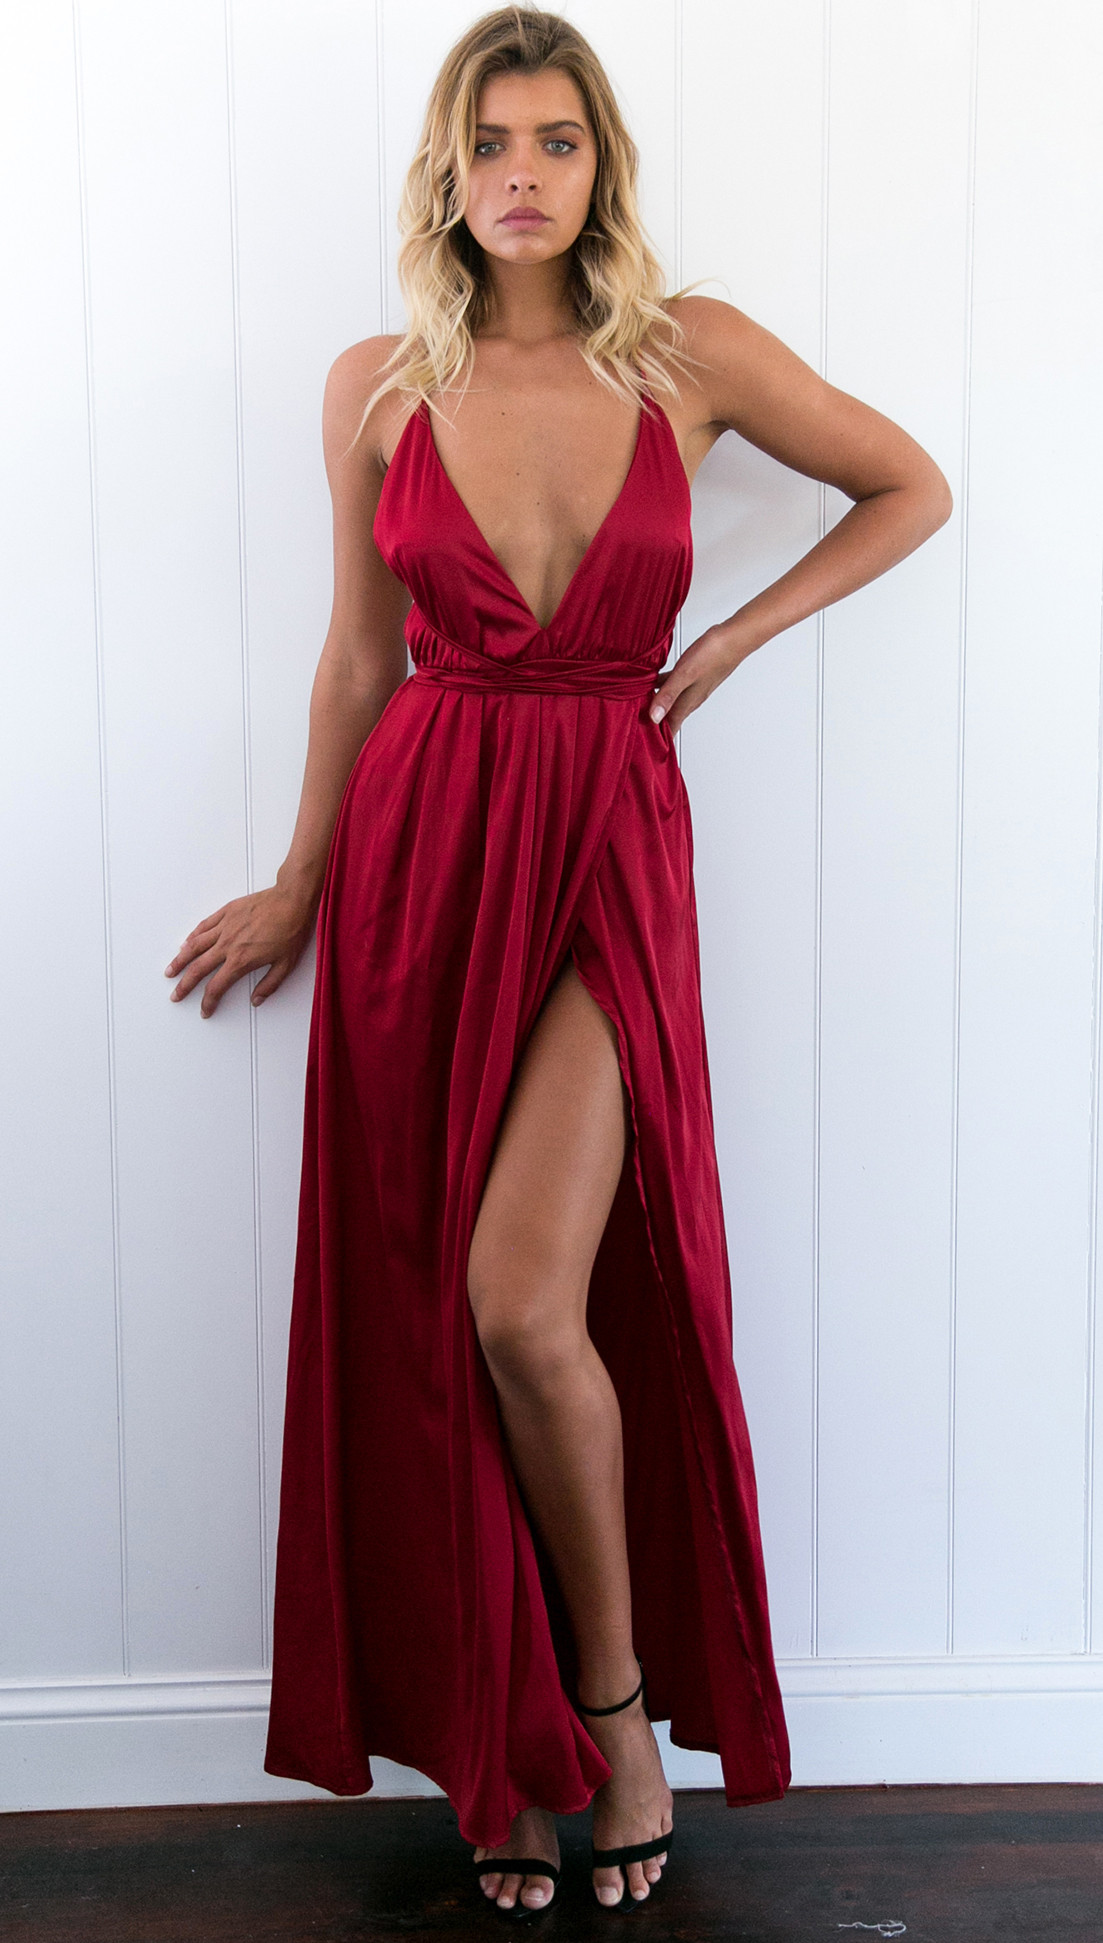 ea59fb03f0 Sexy V-neck Long Dark Red Prom Dress Evening Dress with Criss Cross Back